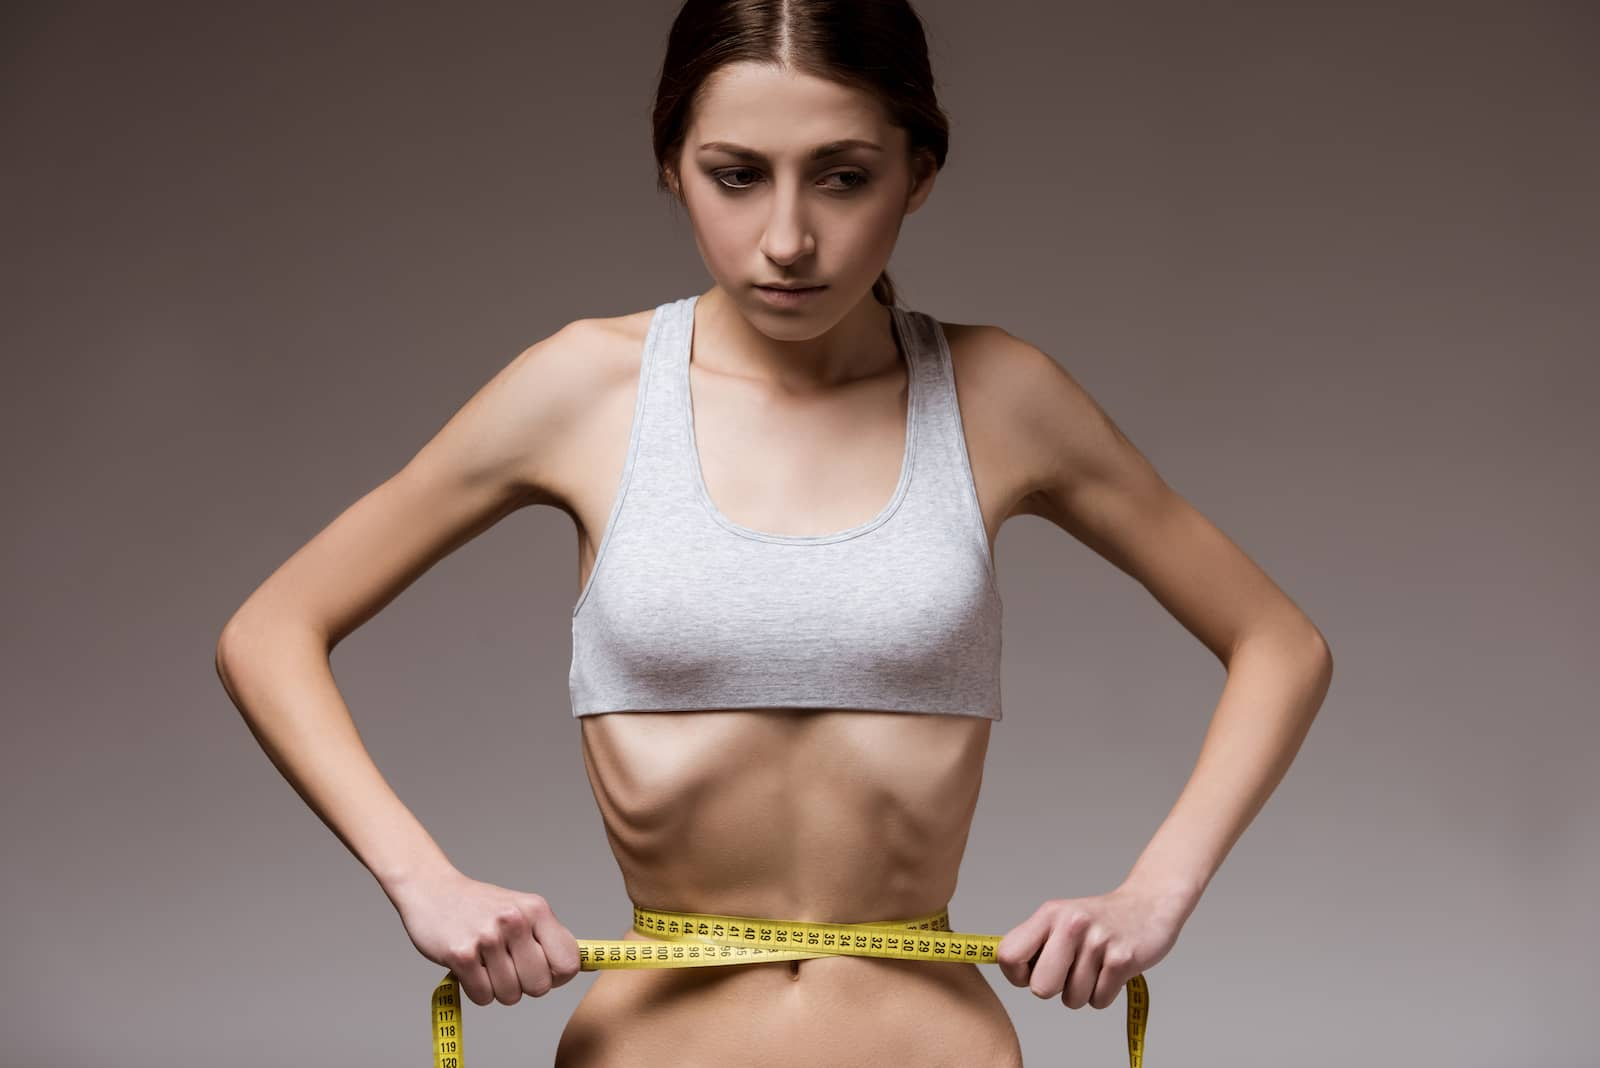 mulher anorexia